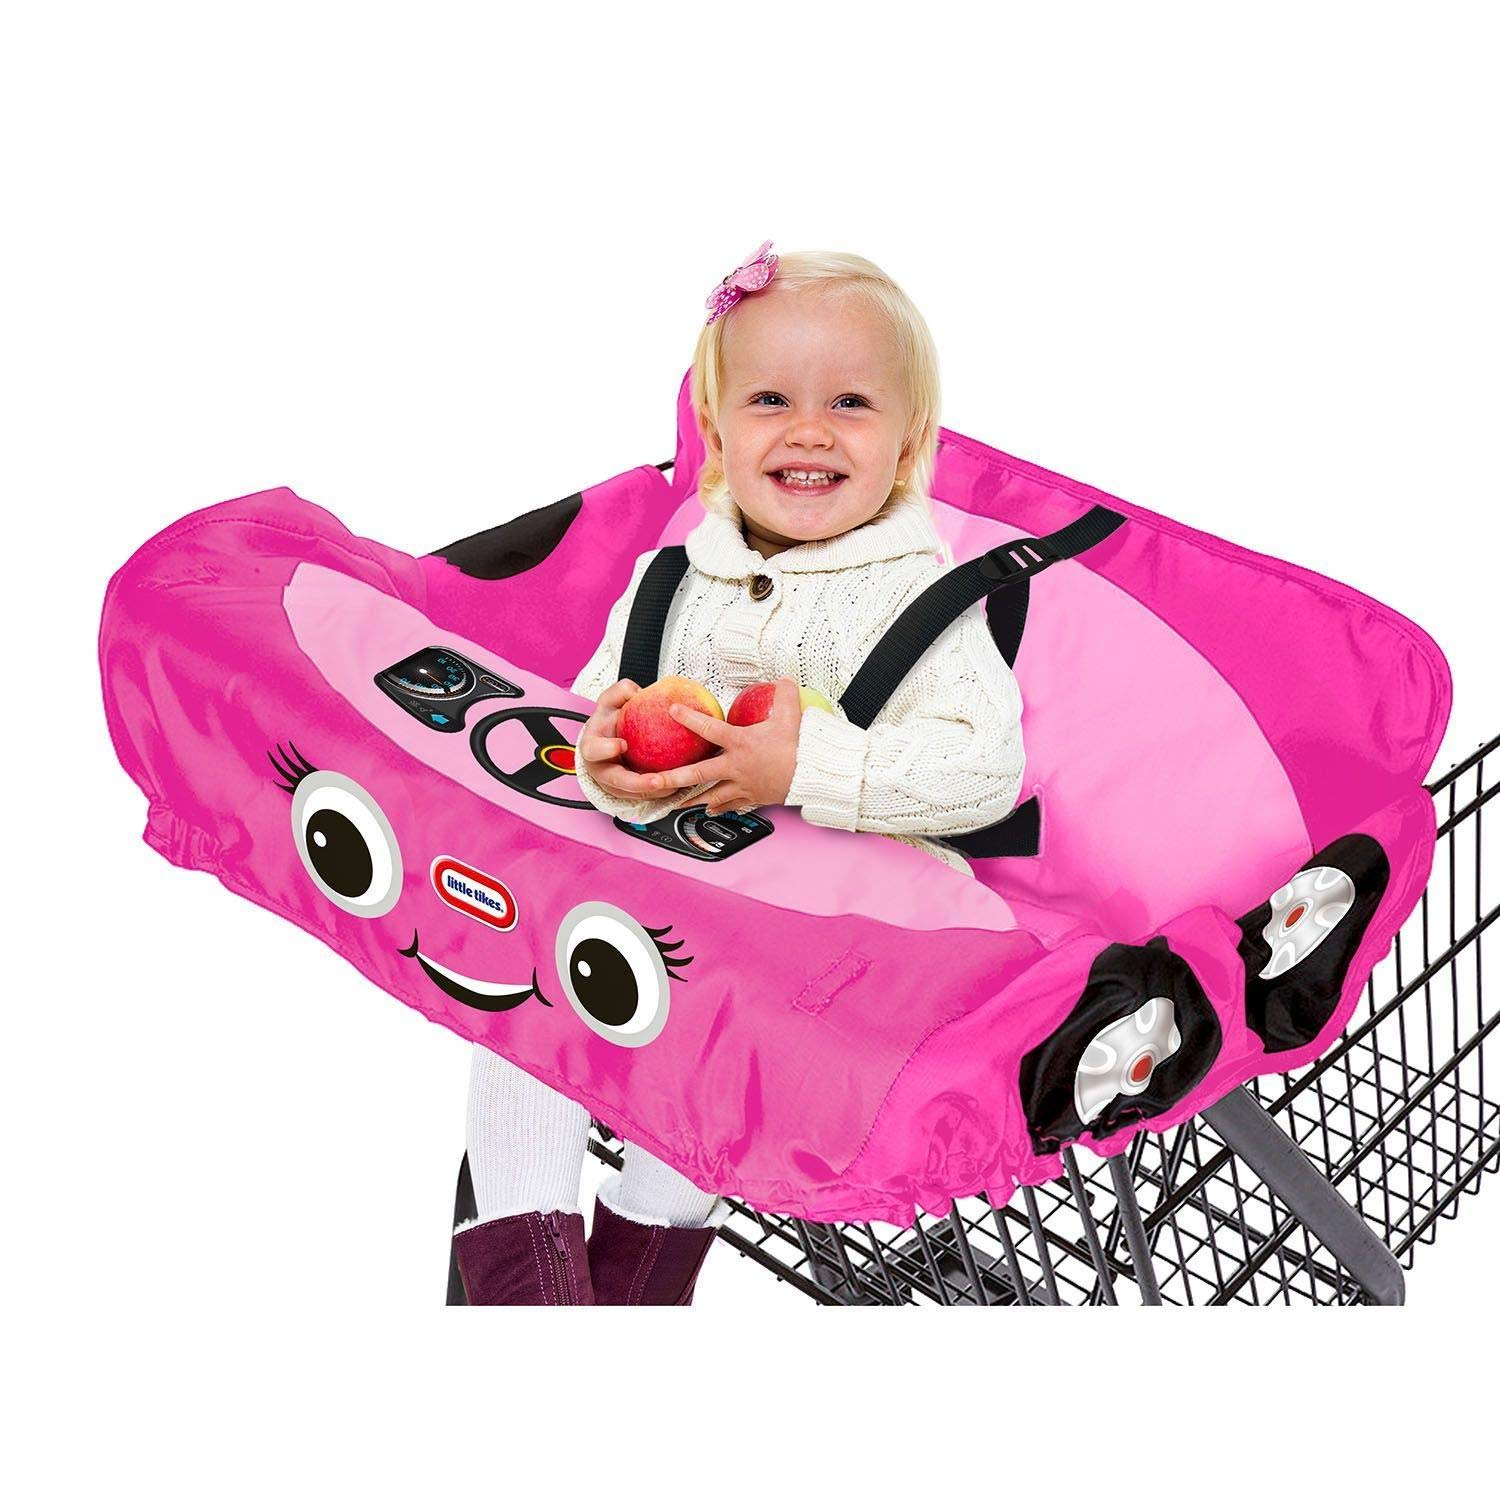 Cozy Coupe Shopping Cart Cover - Pink - High Chair Cover, Shopping Cart Cover, Grocery Cart Cover